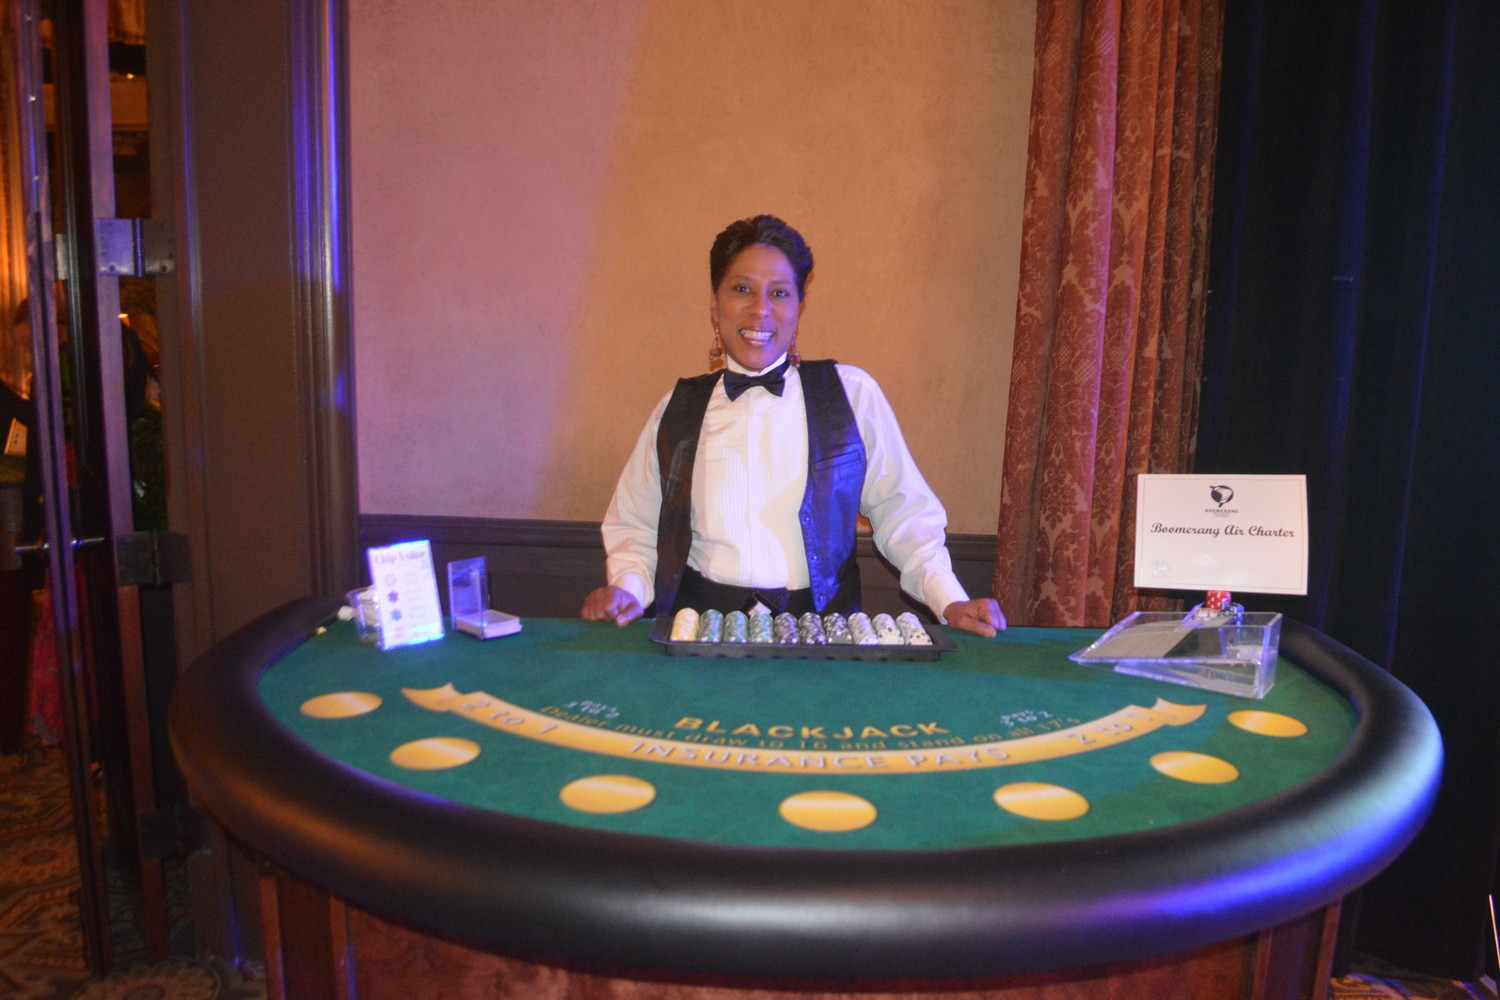 Vanessa Fleming runs the blackjack table.